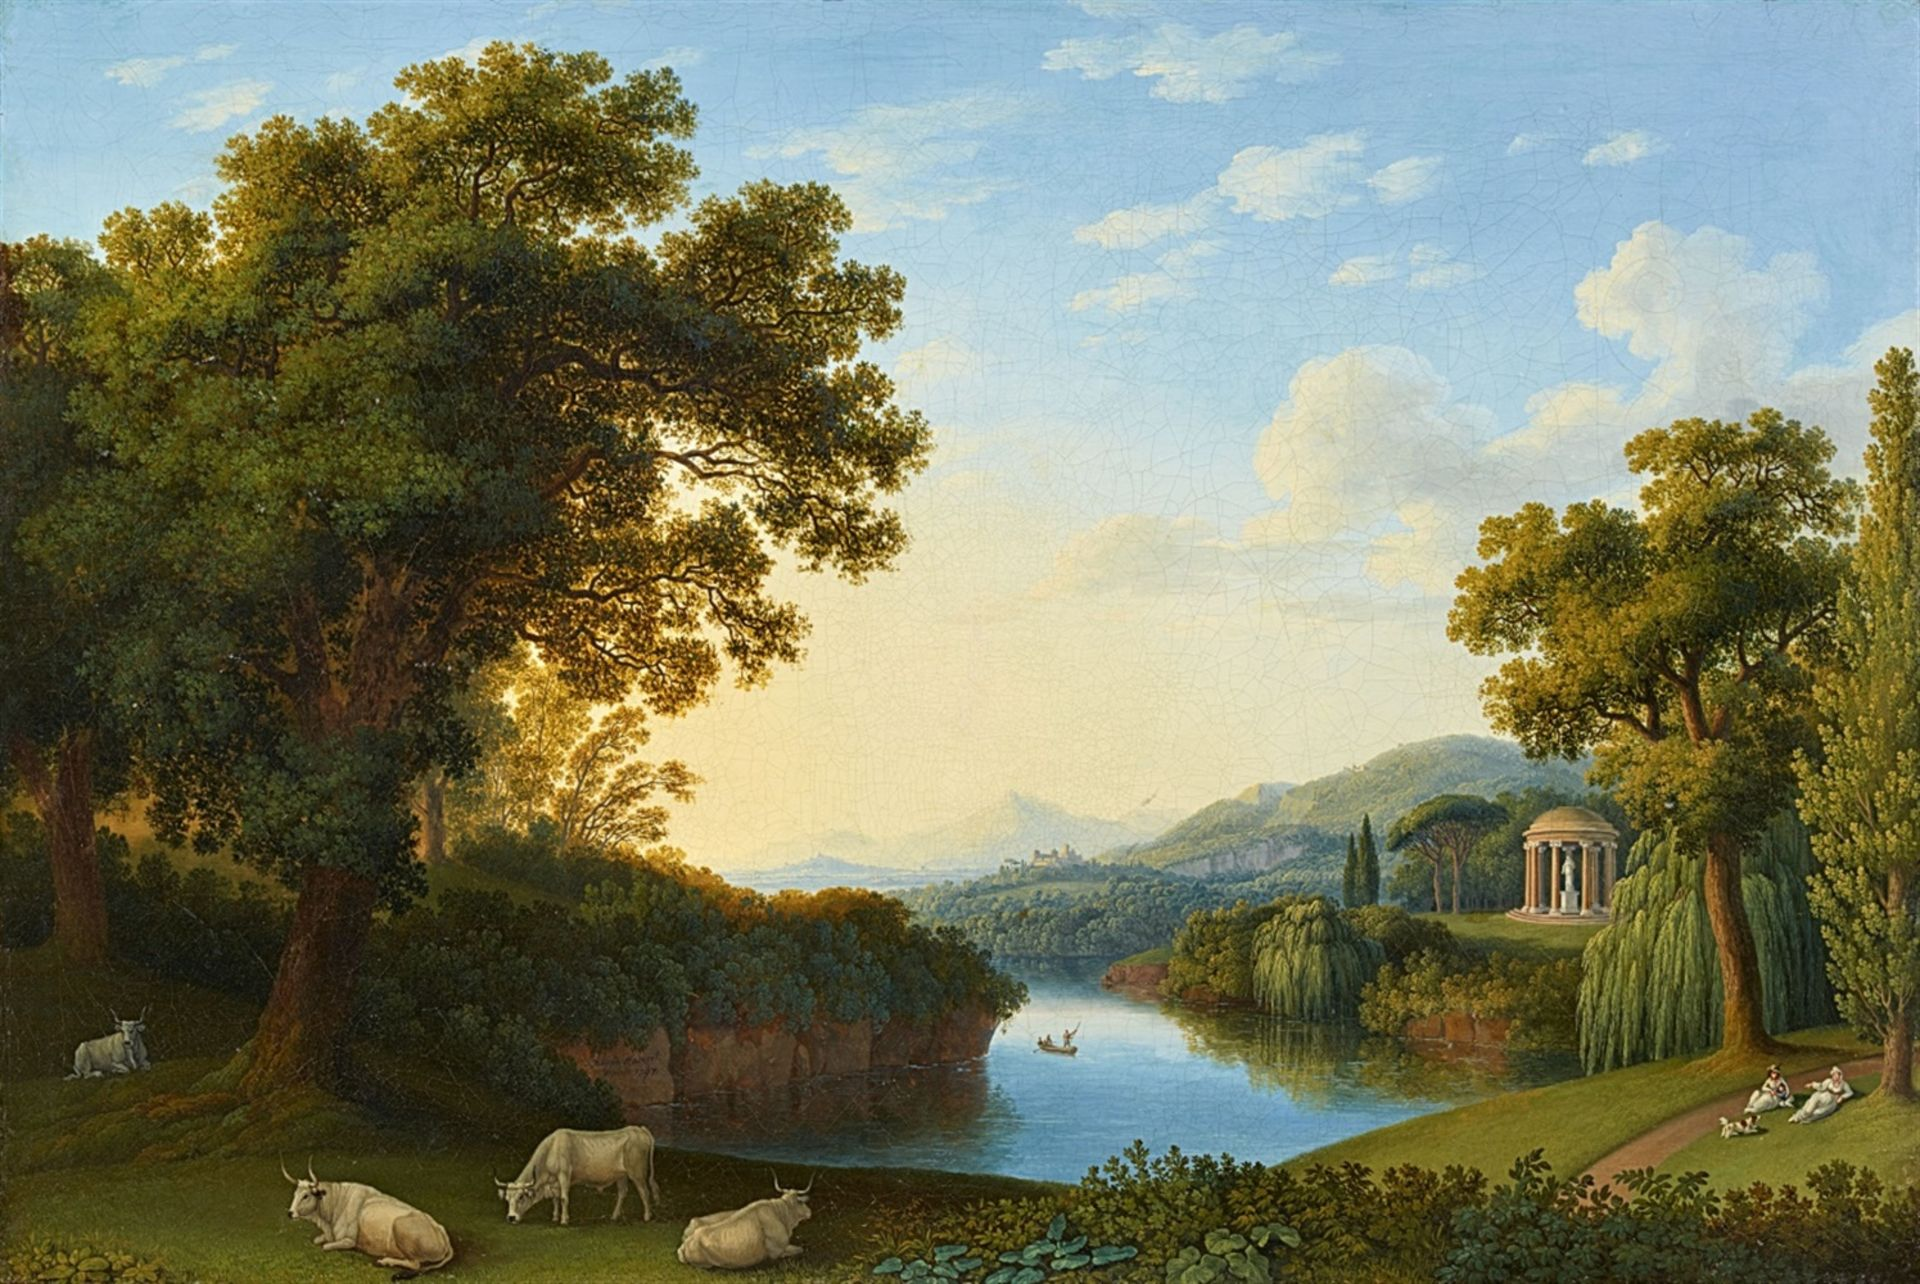 Los 2503 - Jacob Philipp HackertLandscape with Motifs from the English Garden in CasertaOil on canvas (